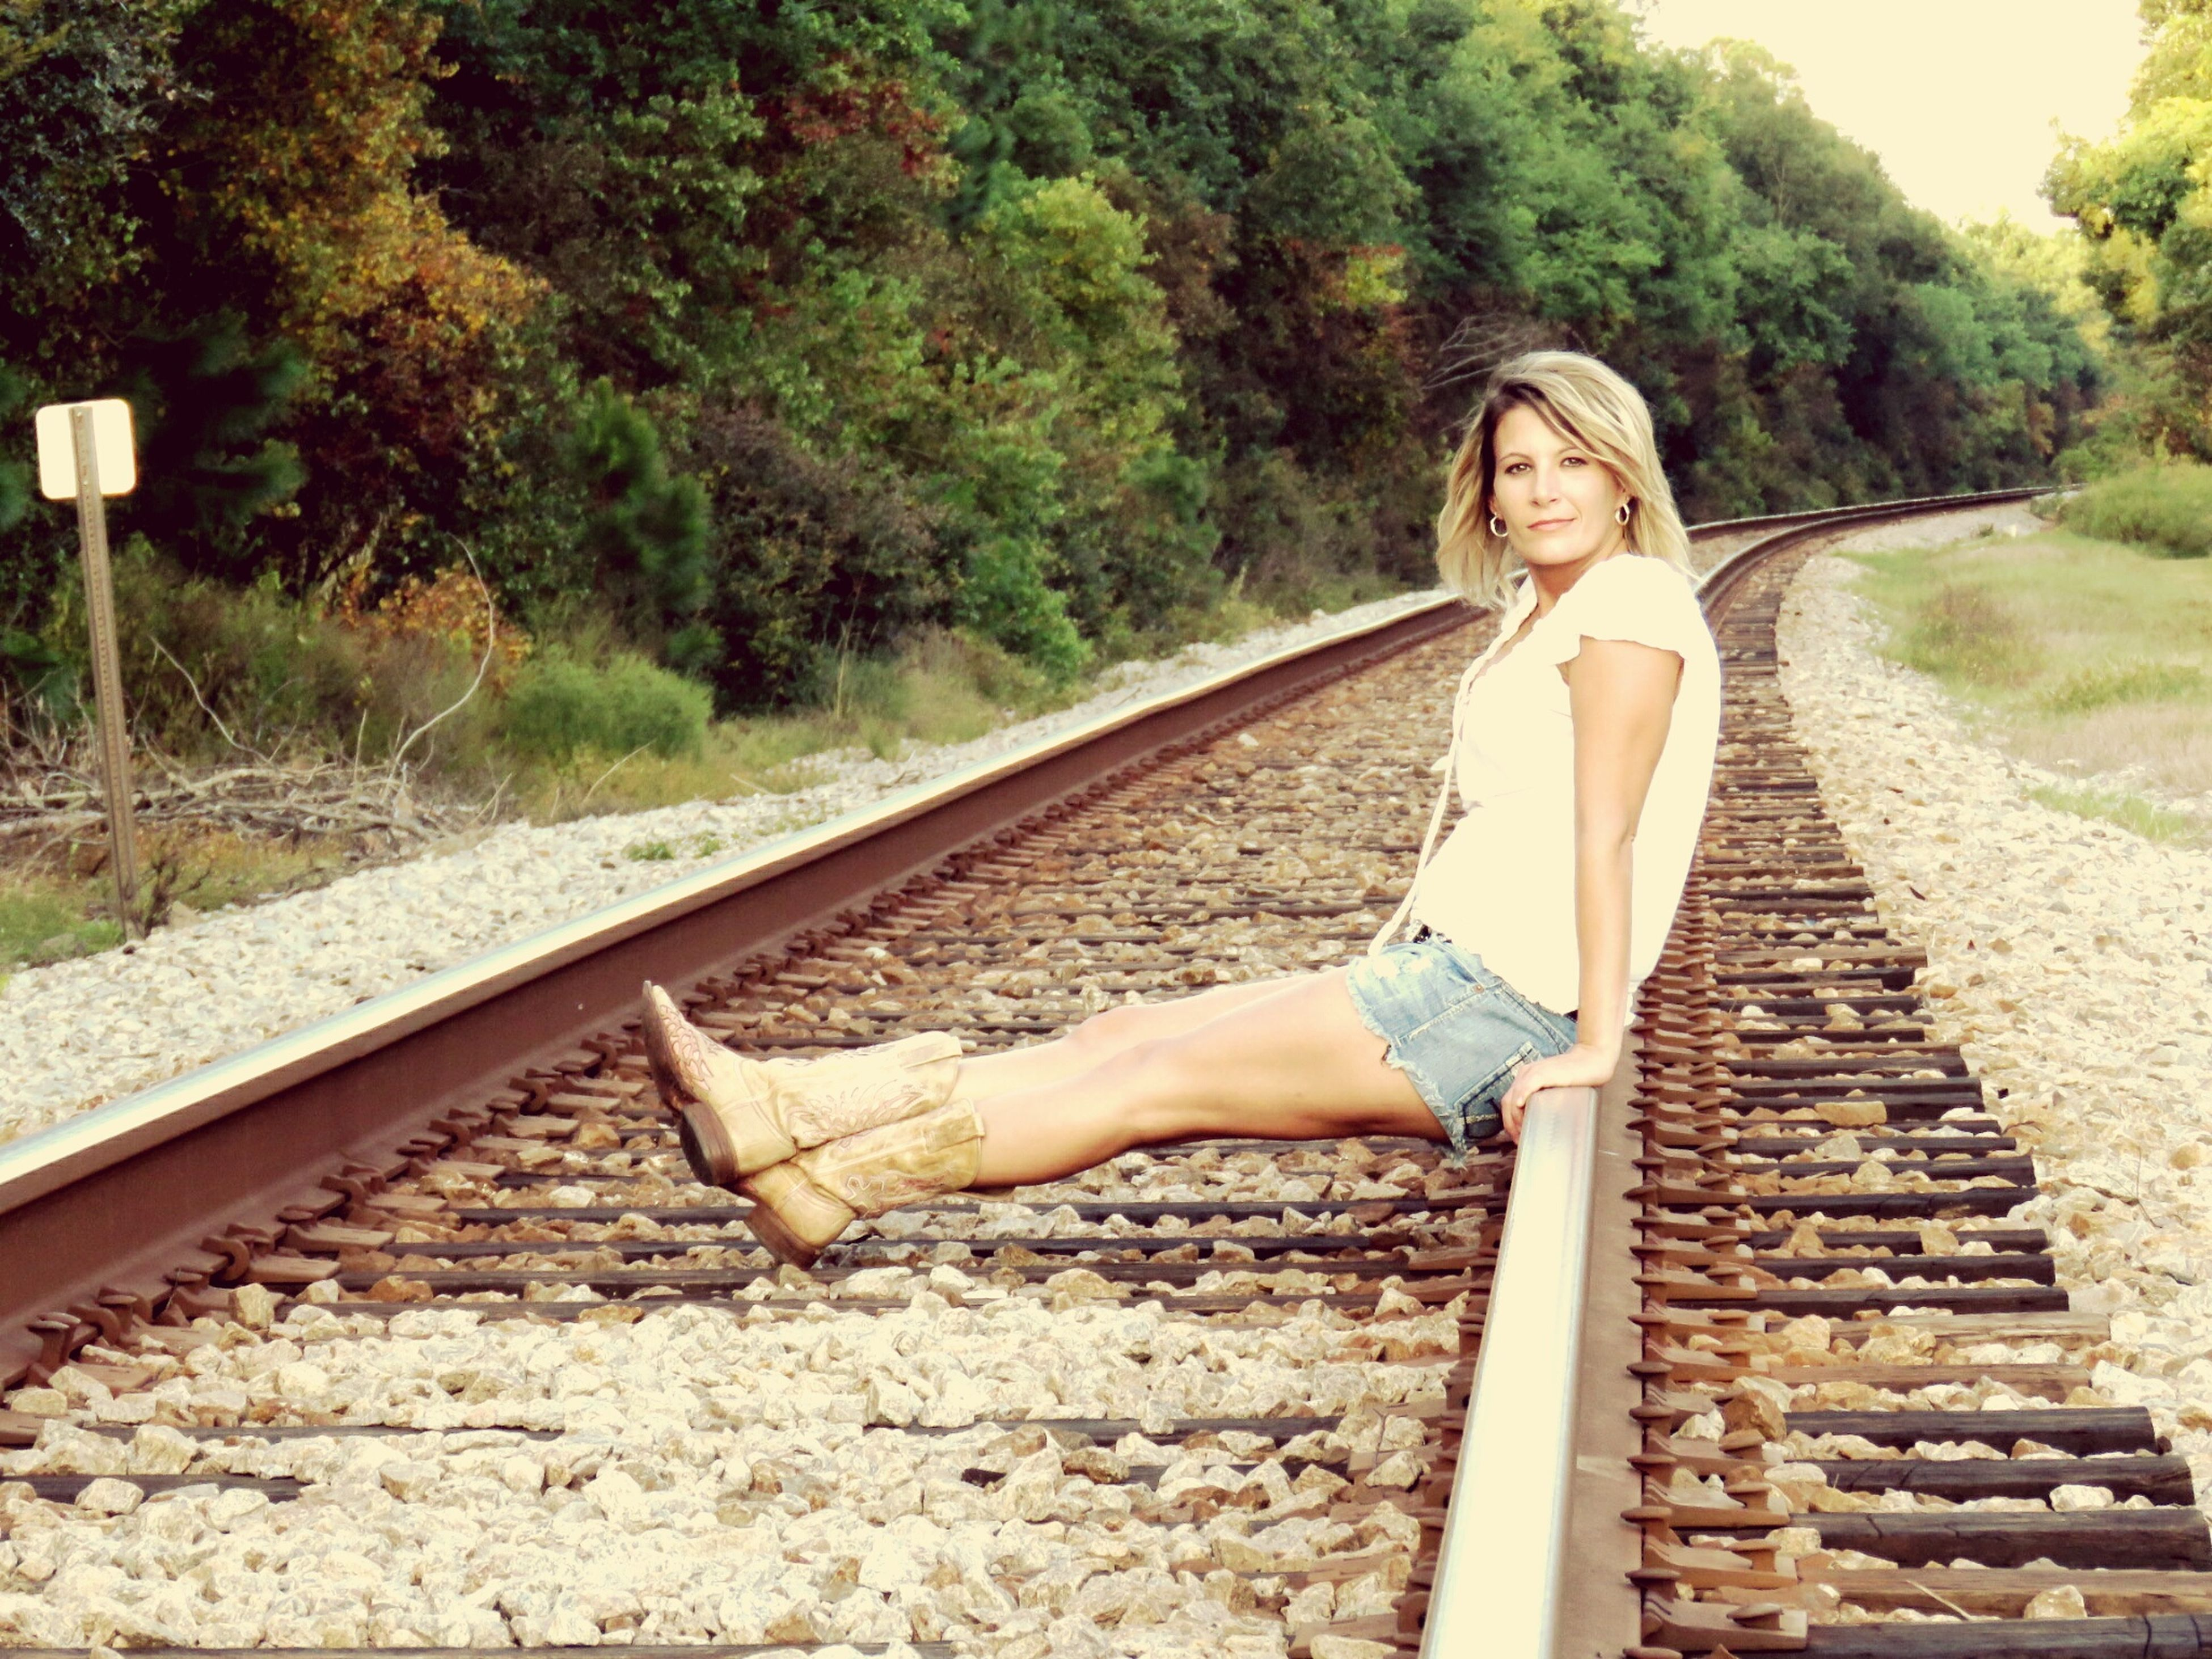 railroad track, transportation, full length, young women, casual clothing, young adult, leisure activity, relaxation, lifestyles, person, travel, outdoors, day, summer, looking at camera, nature, long hair, carefree, vacations, the way forward, diminishing perspective